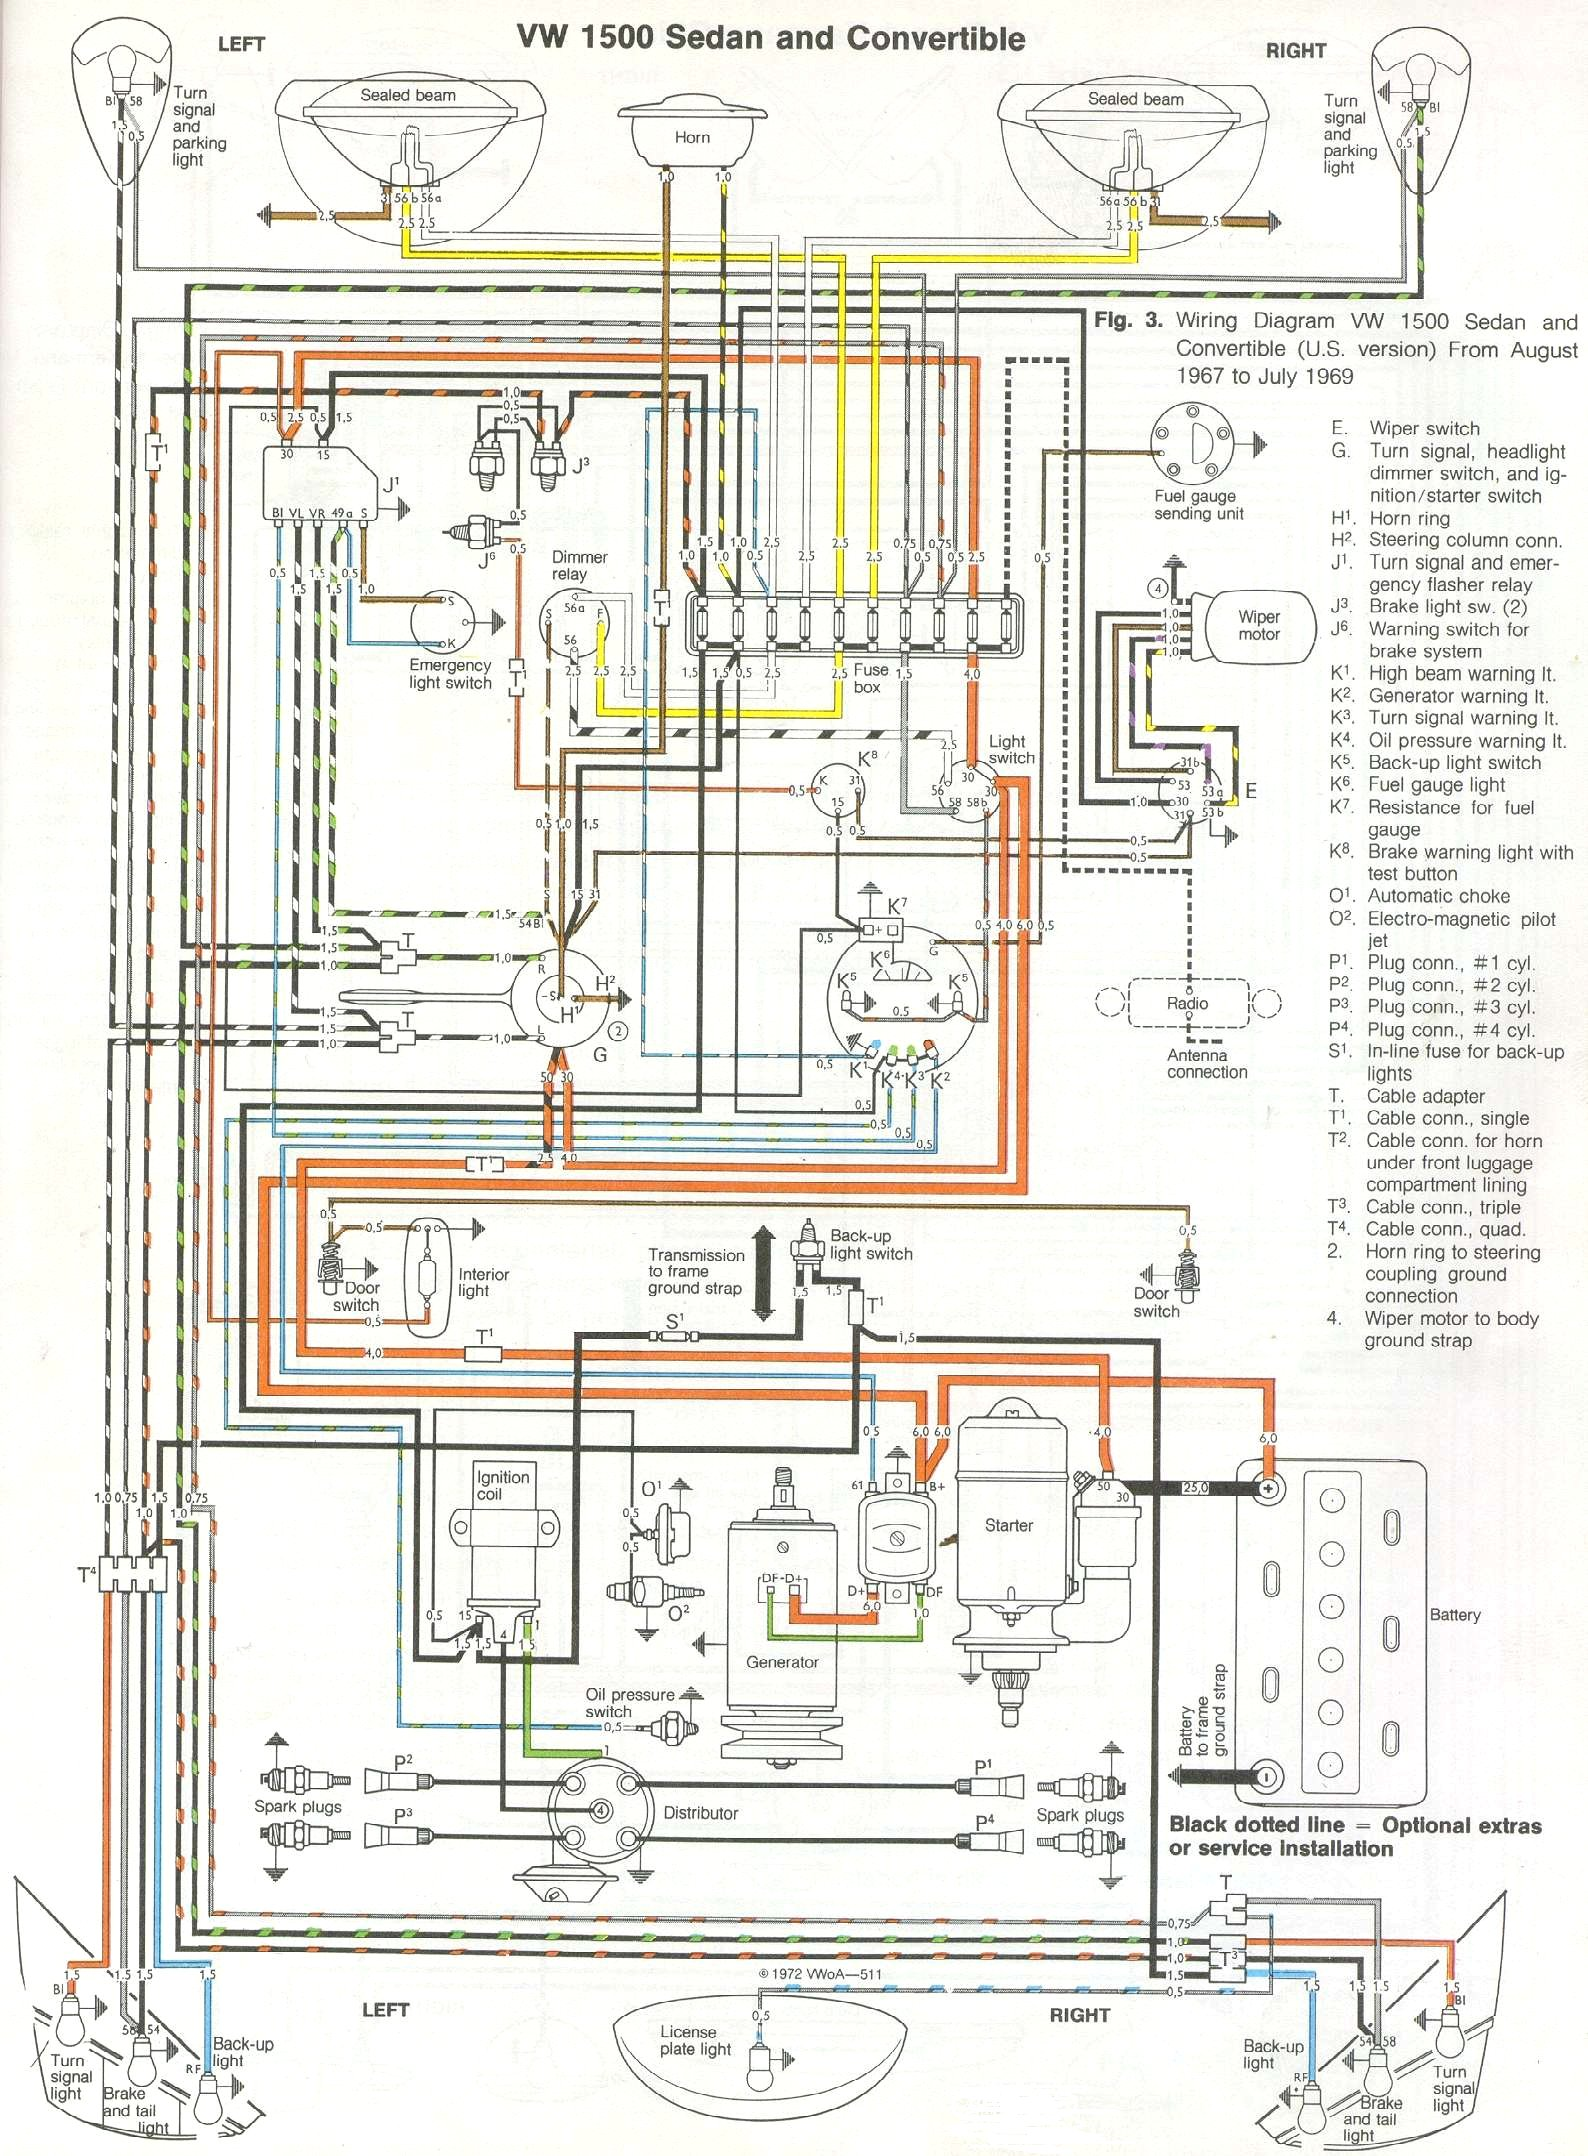 1968 69 Beetle Wiring Diagram (usa) Thegoldenbug Com 1979 VW Beetle Wiring  Diagram 1968 Vw Wiring Schematic